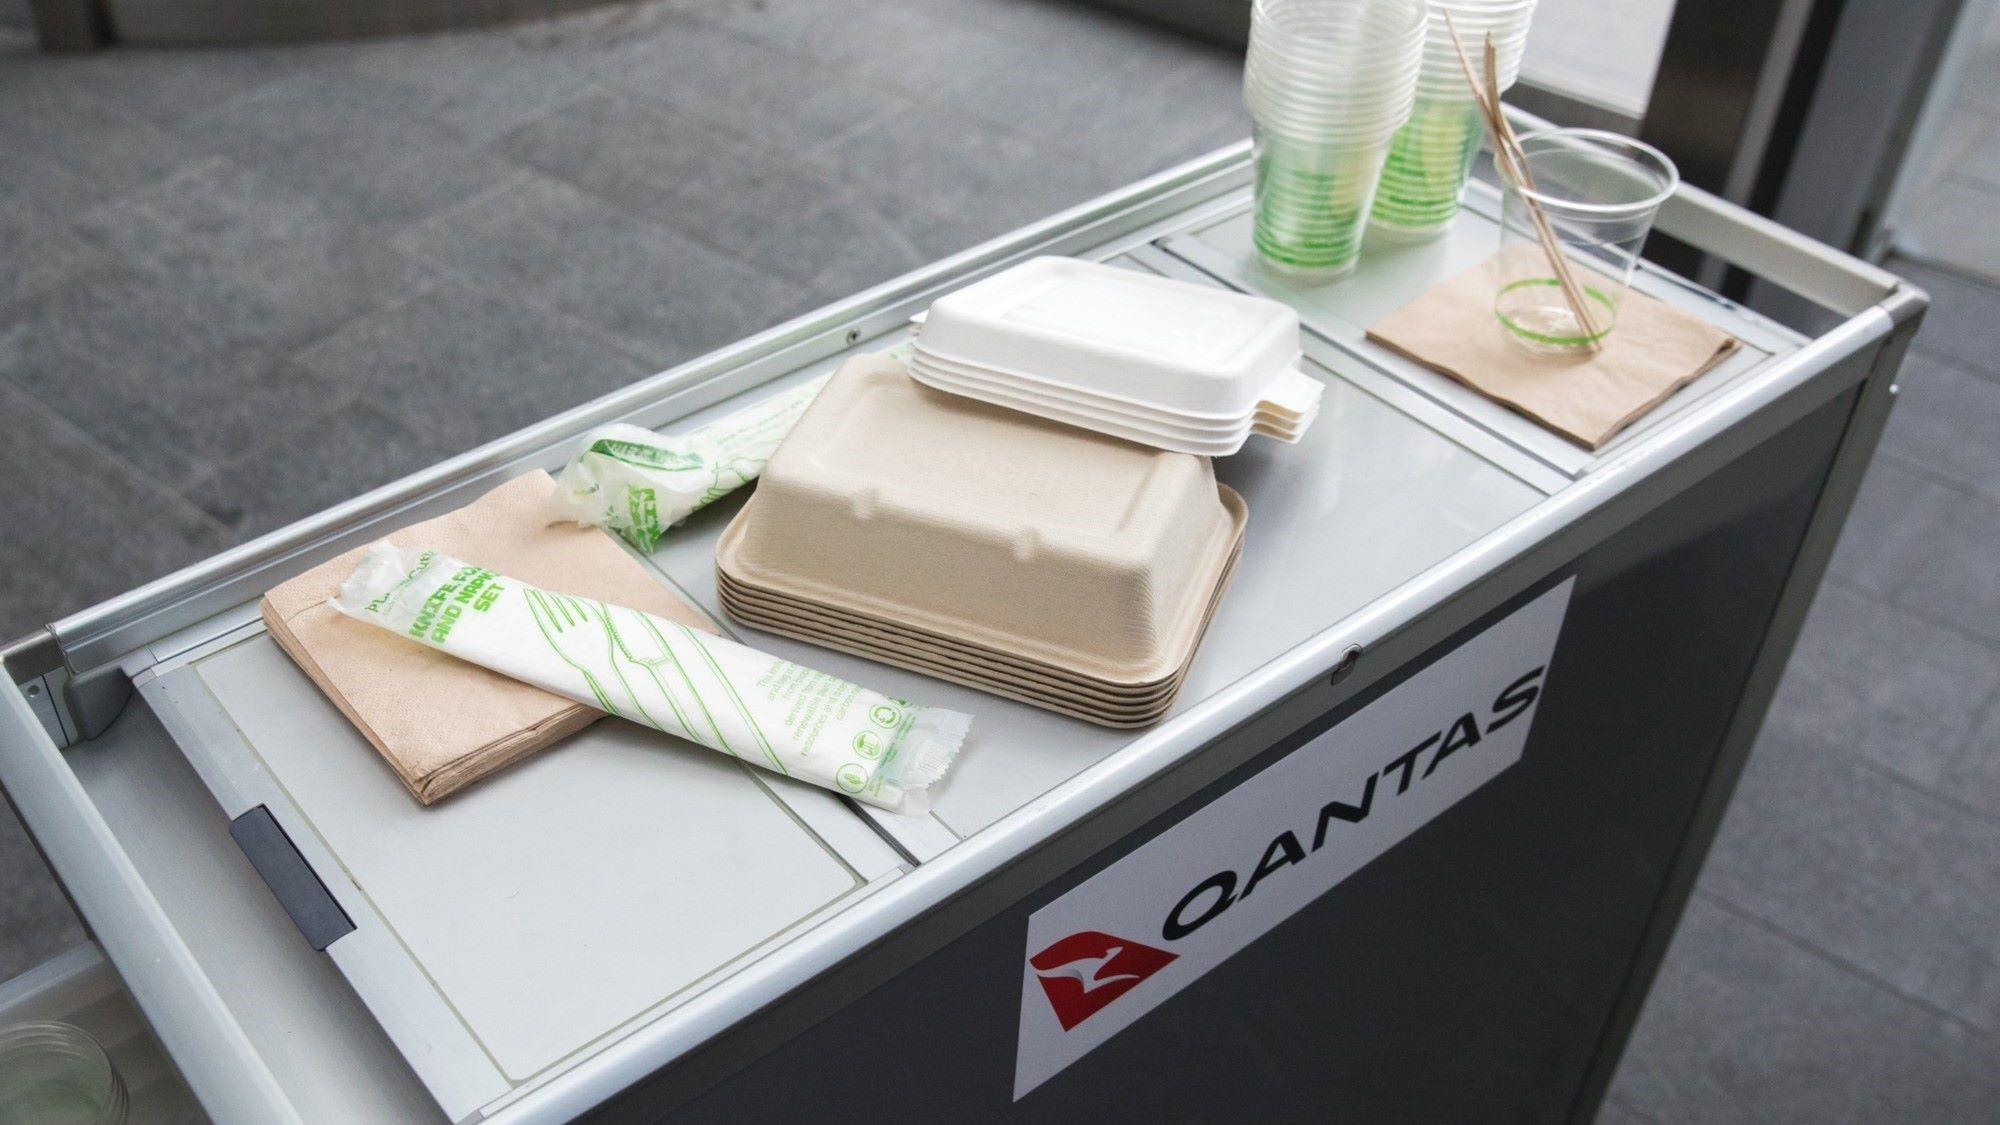 SUEZ qantas packaging 2000x1125